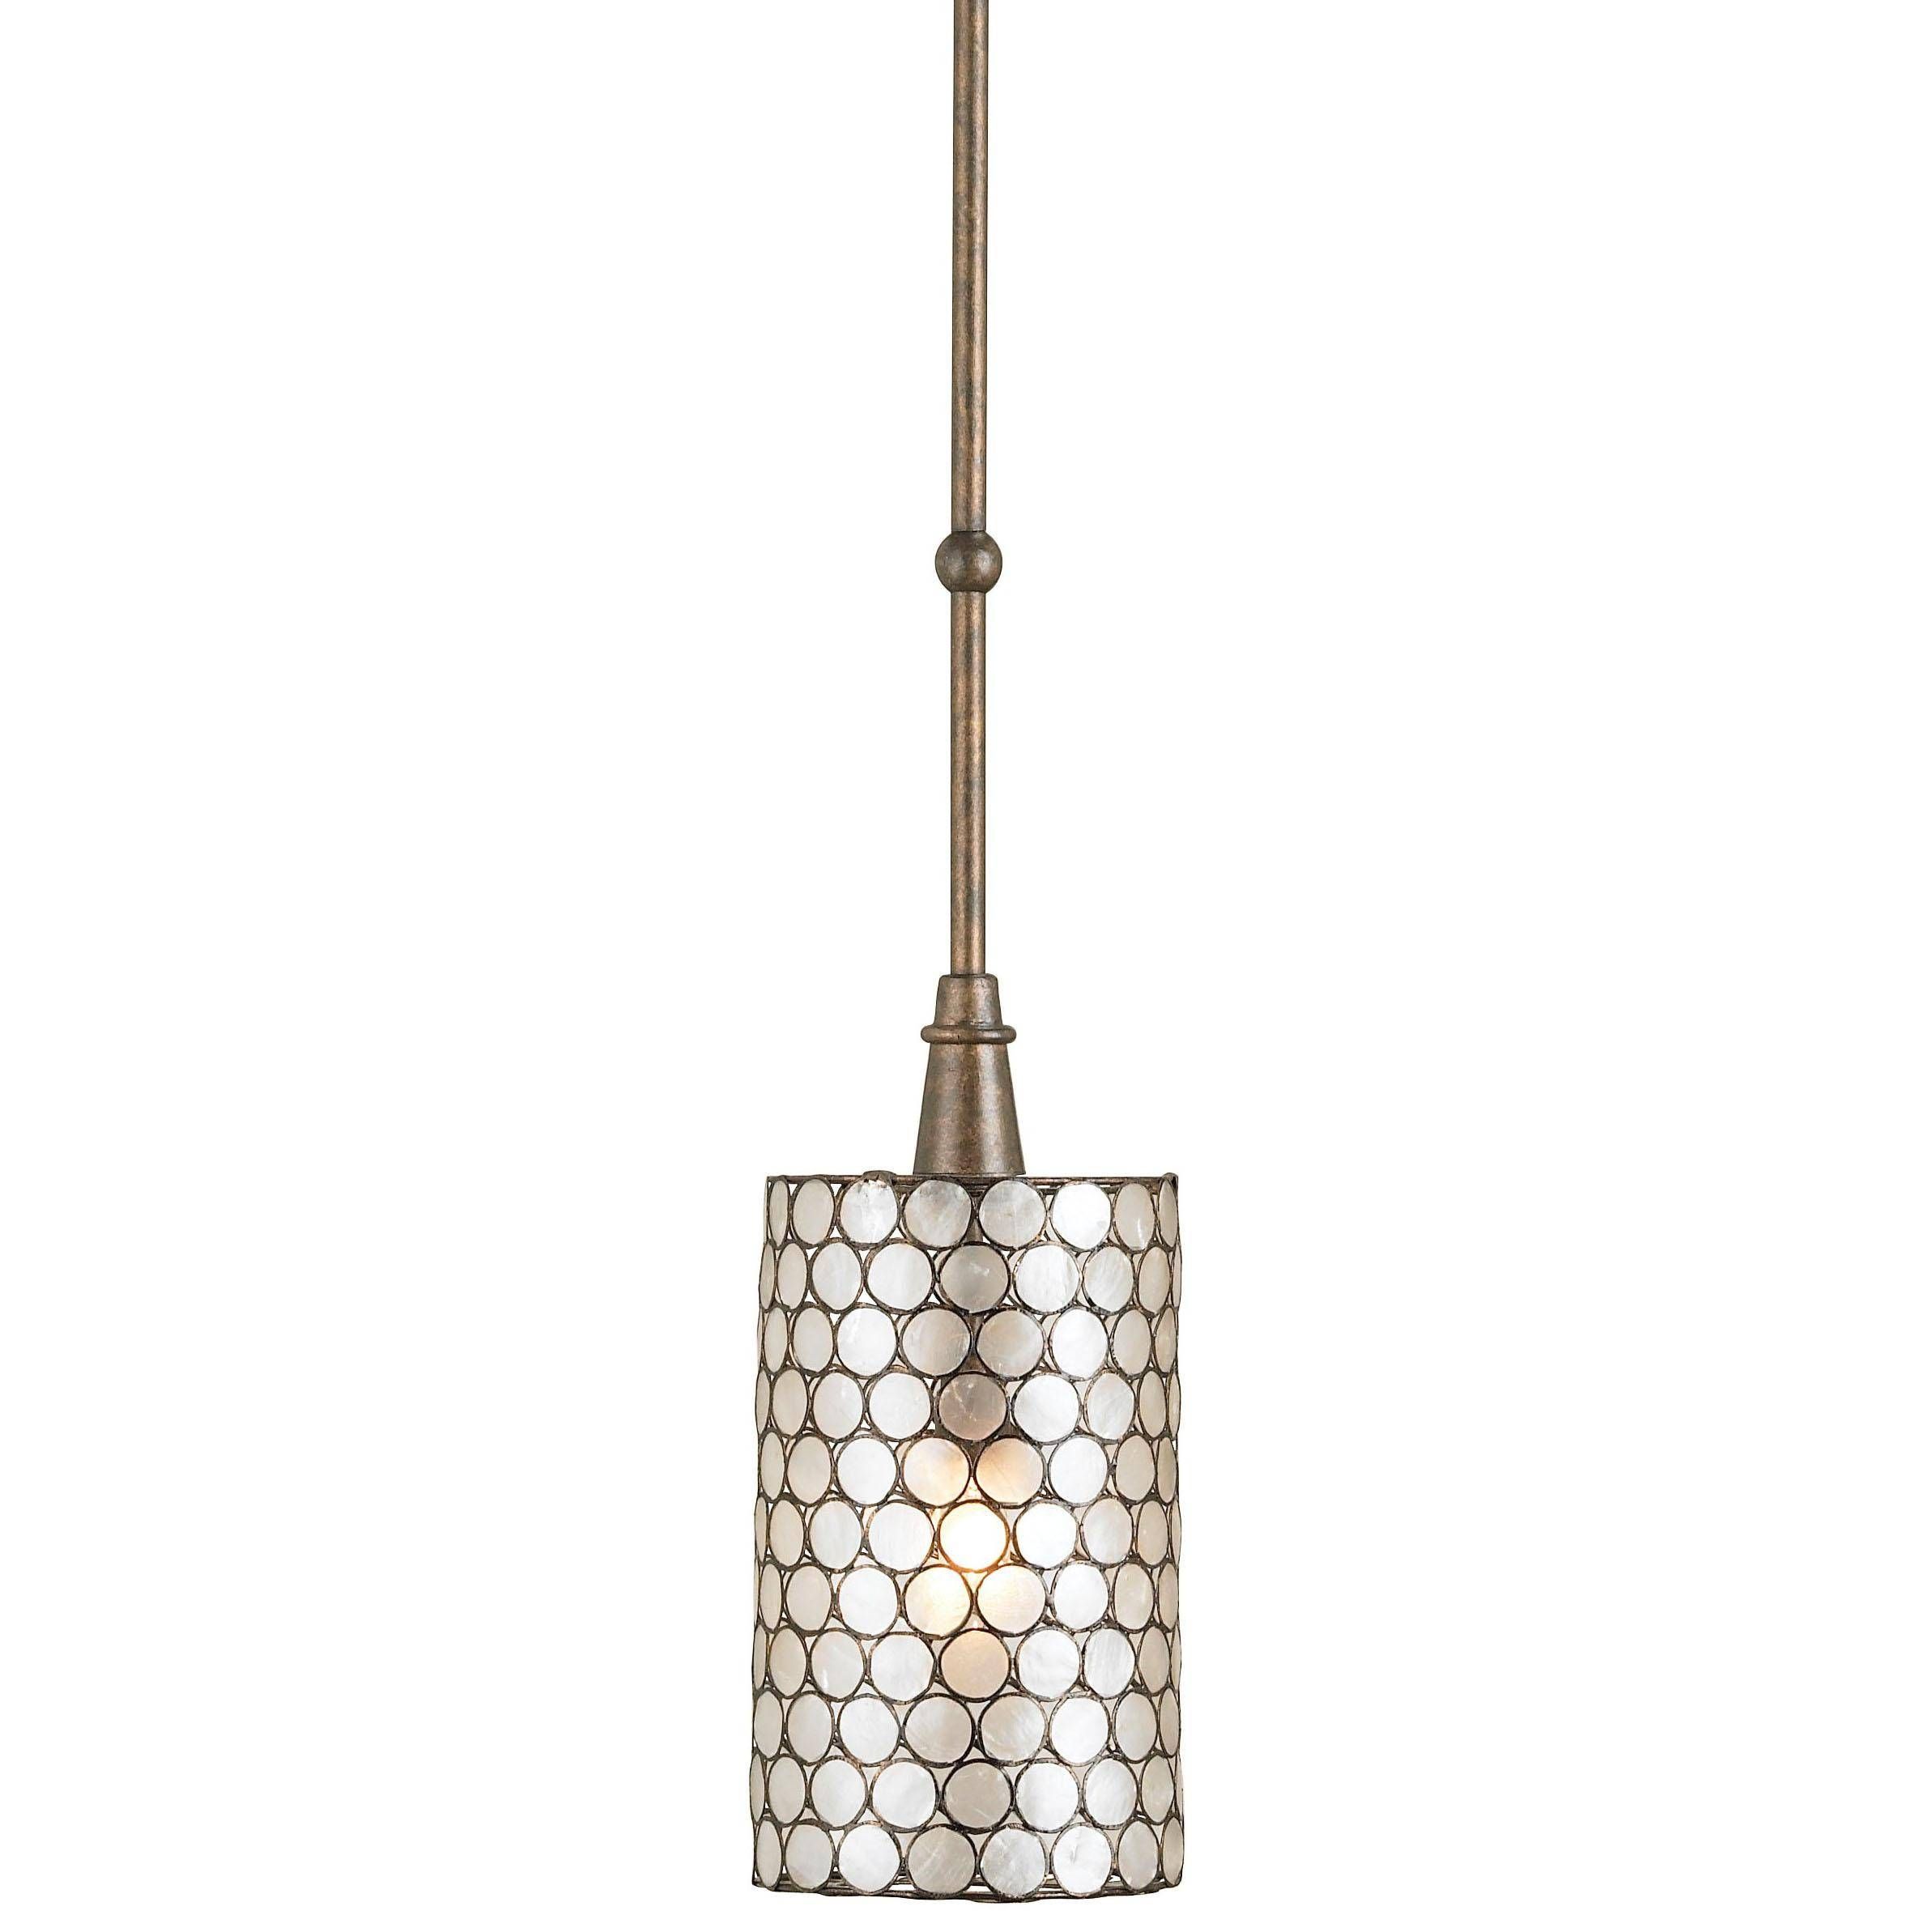 Pendant Lighting : Moroccan Pendant Light Australia Plan A pertaining to Moroccan Punched Metal Pendant Lights (Image 14 of 15)